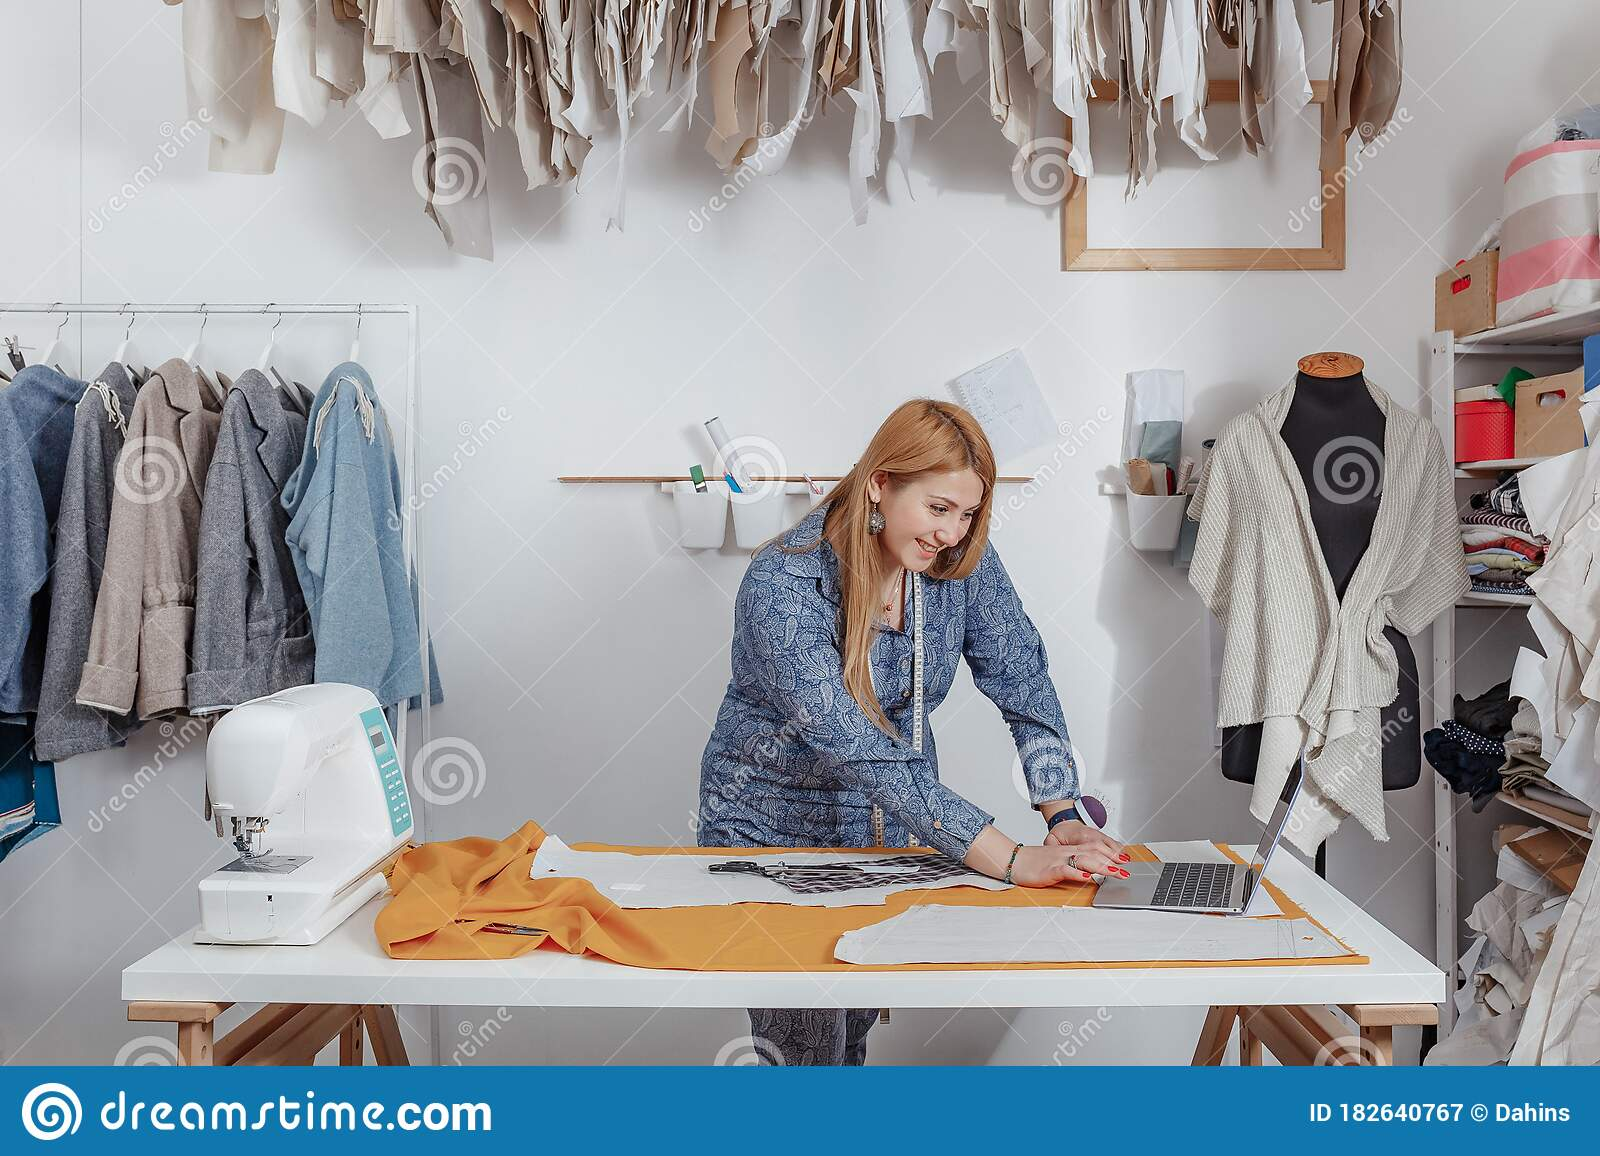 Fashion Designer Pinning Fabric Cutouts Professional Dressmaker At Work Tailor Cutting A Textile At Workbench Stock Image Image Of Damaged Empty 182640767